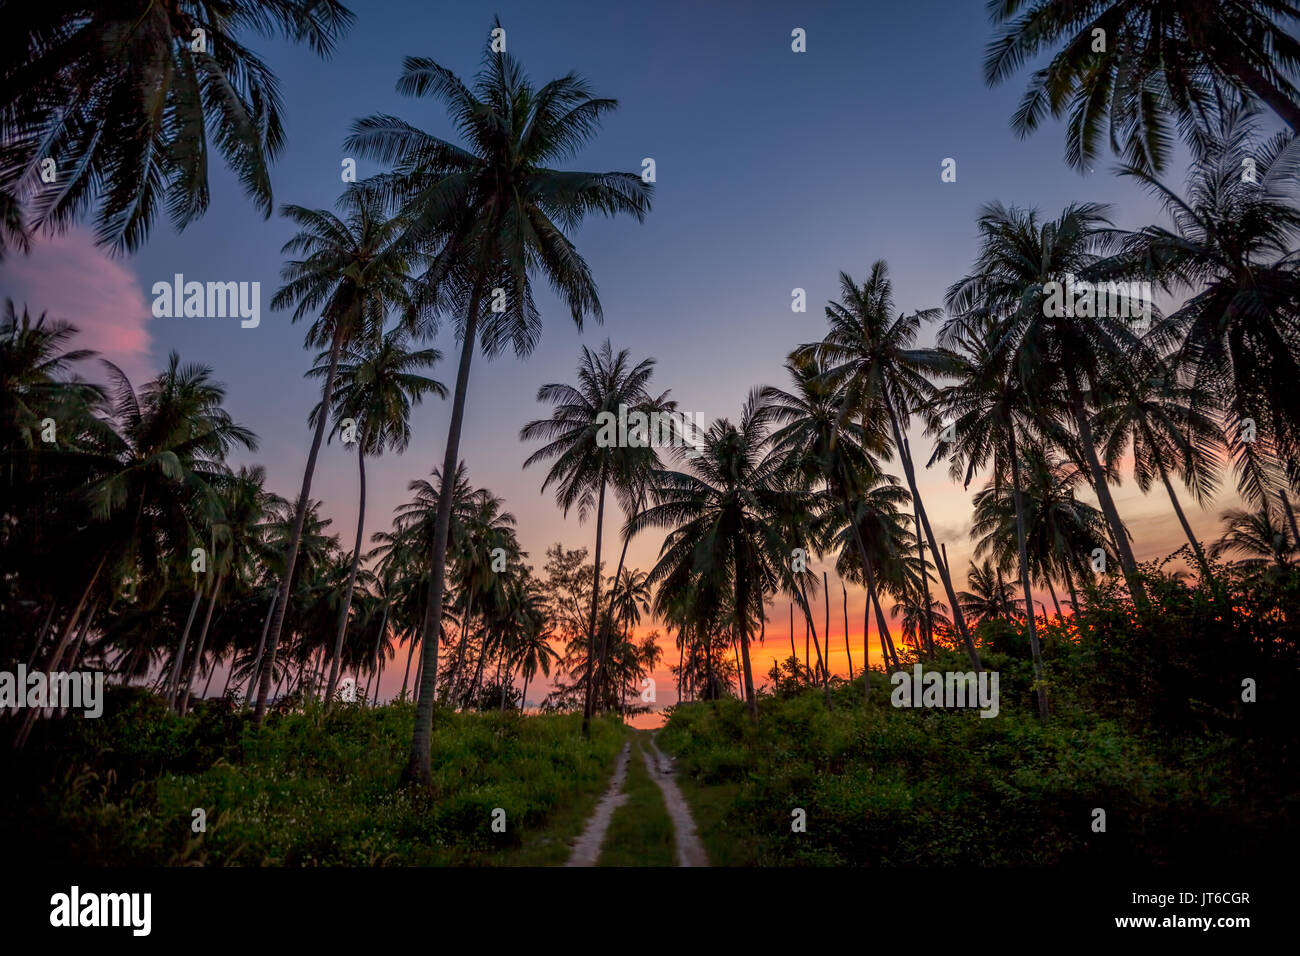 Palm trees silhouettes during a colorful tropical sunset at Nathon beach, Laem Yai, Koh Samui, Thailand - Stock Image